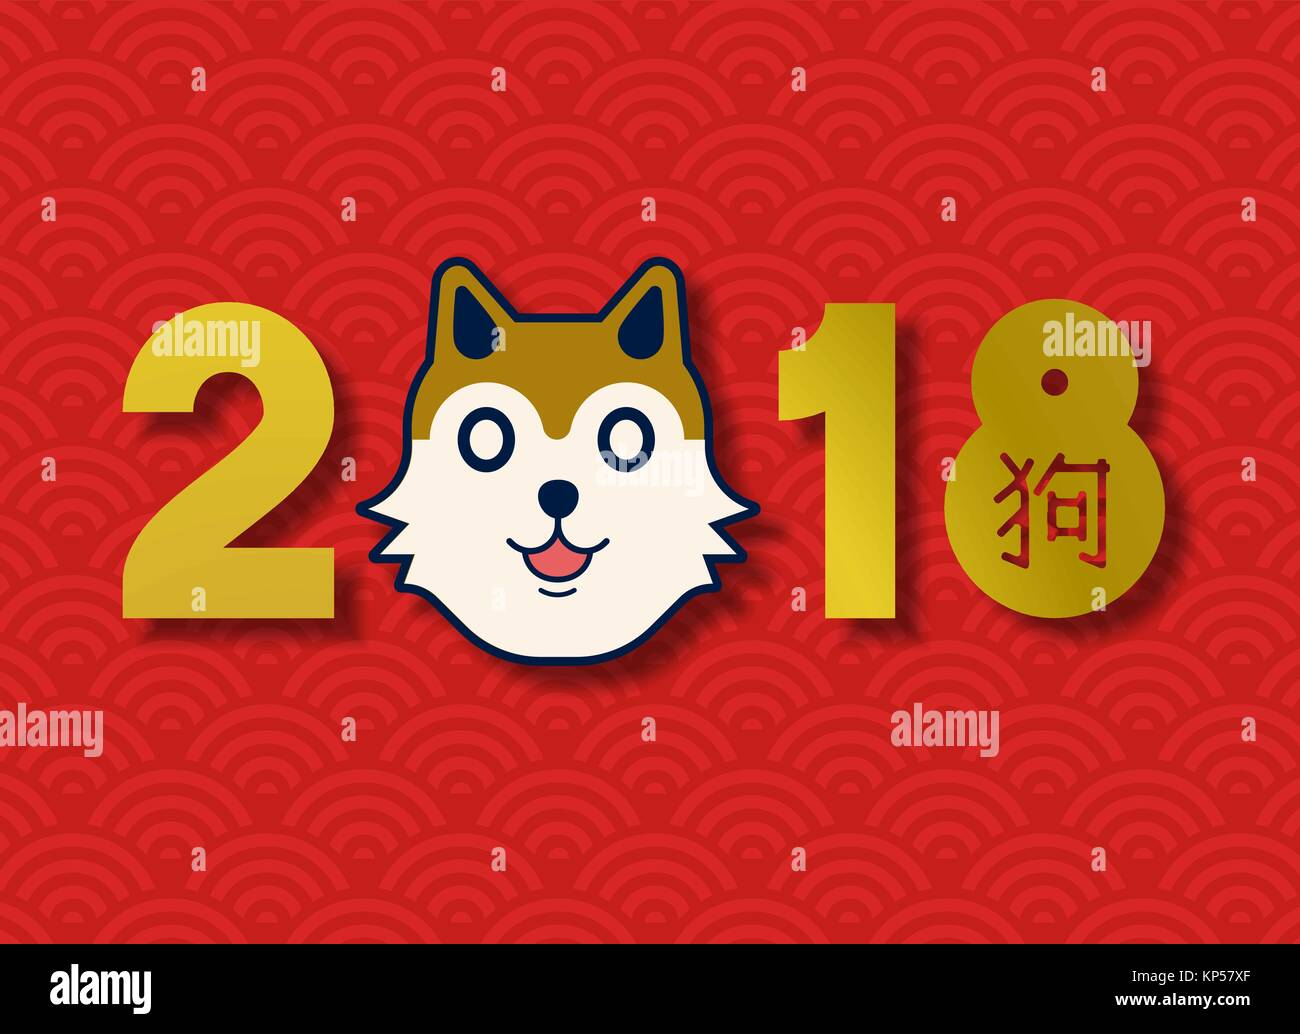 chinesisches neujahr 2018 gold typografie zitat abbildung mit niedlichen shiba inu welpen und. Black Bedroom Furniture Sets. Home Design Ideas